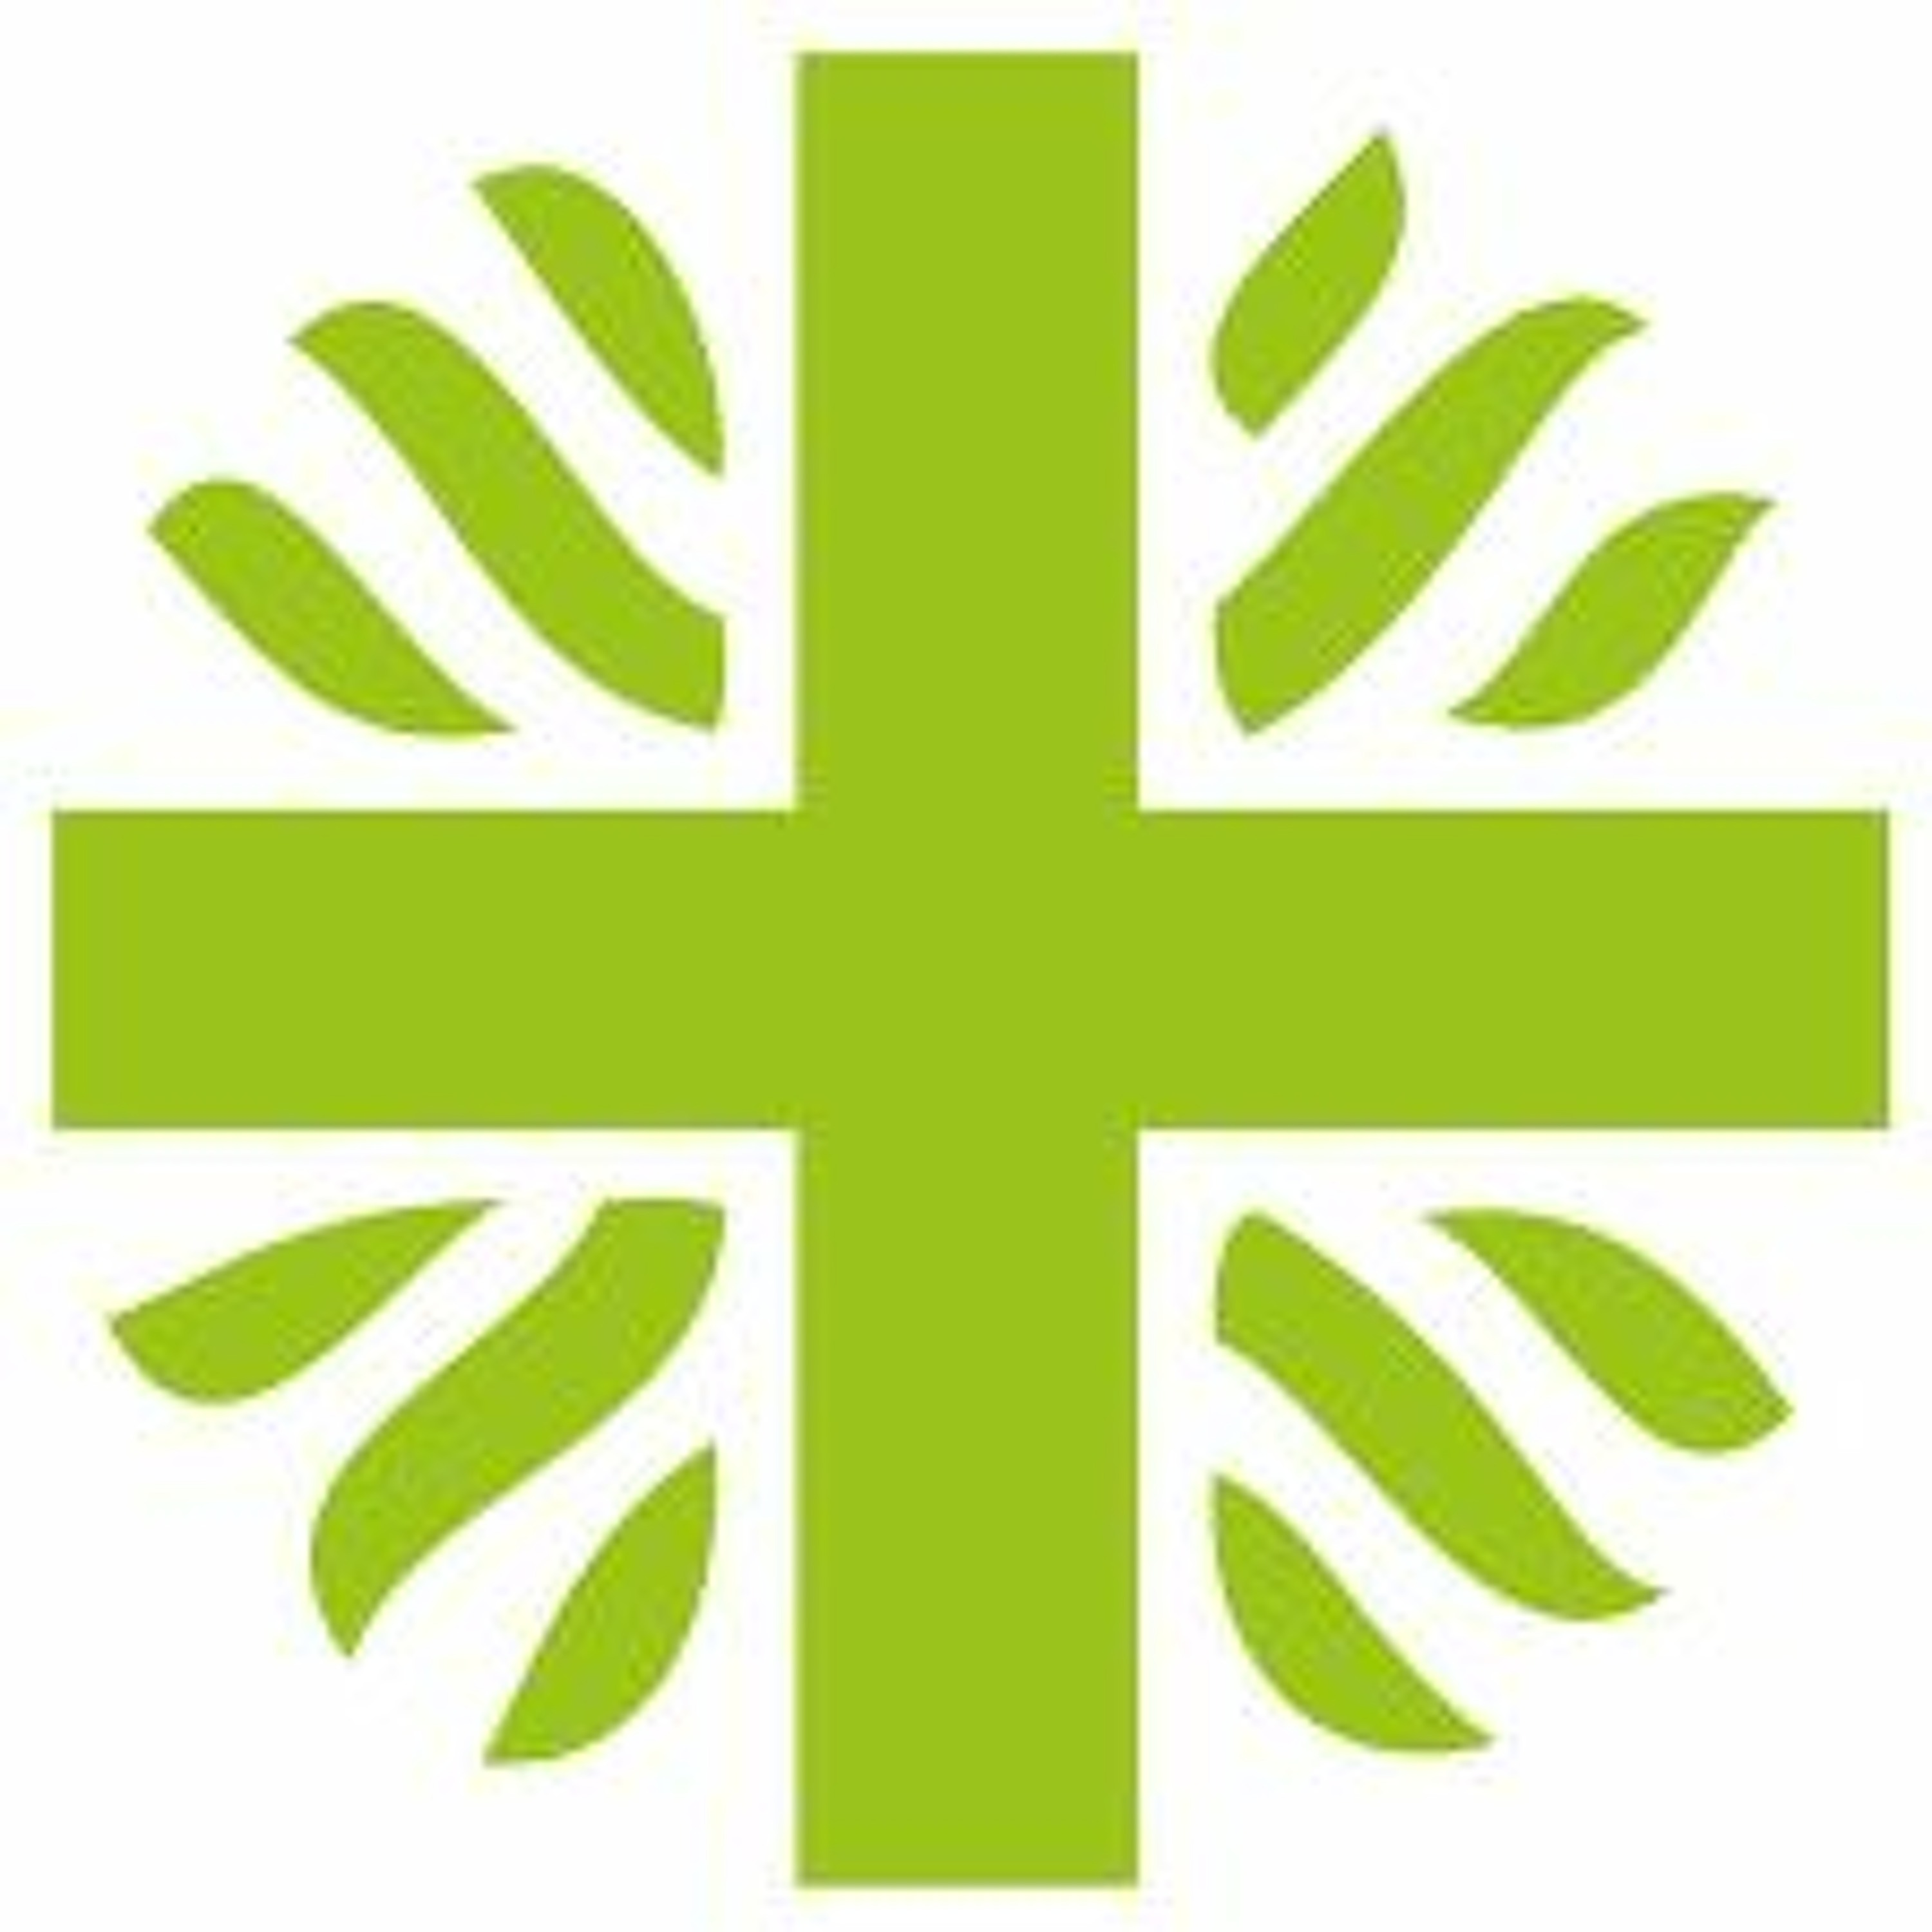 Bible in Action - Stewards of the Earth - Lent week 5